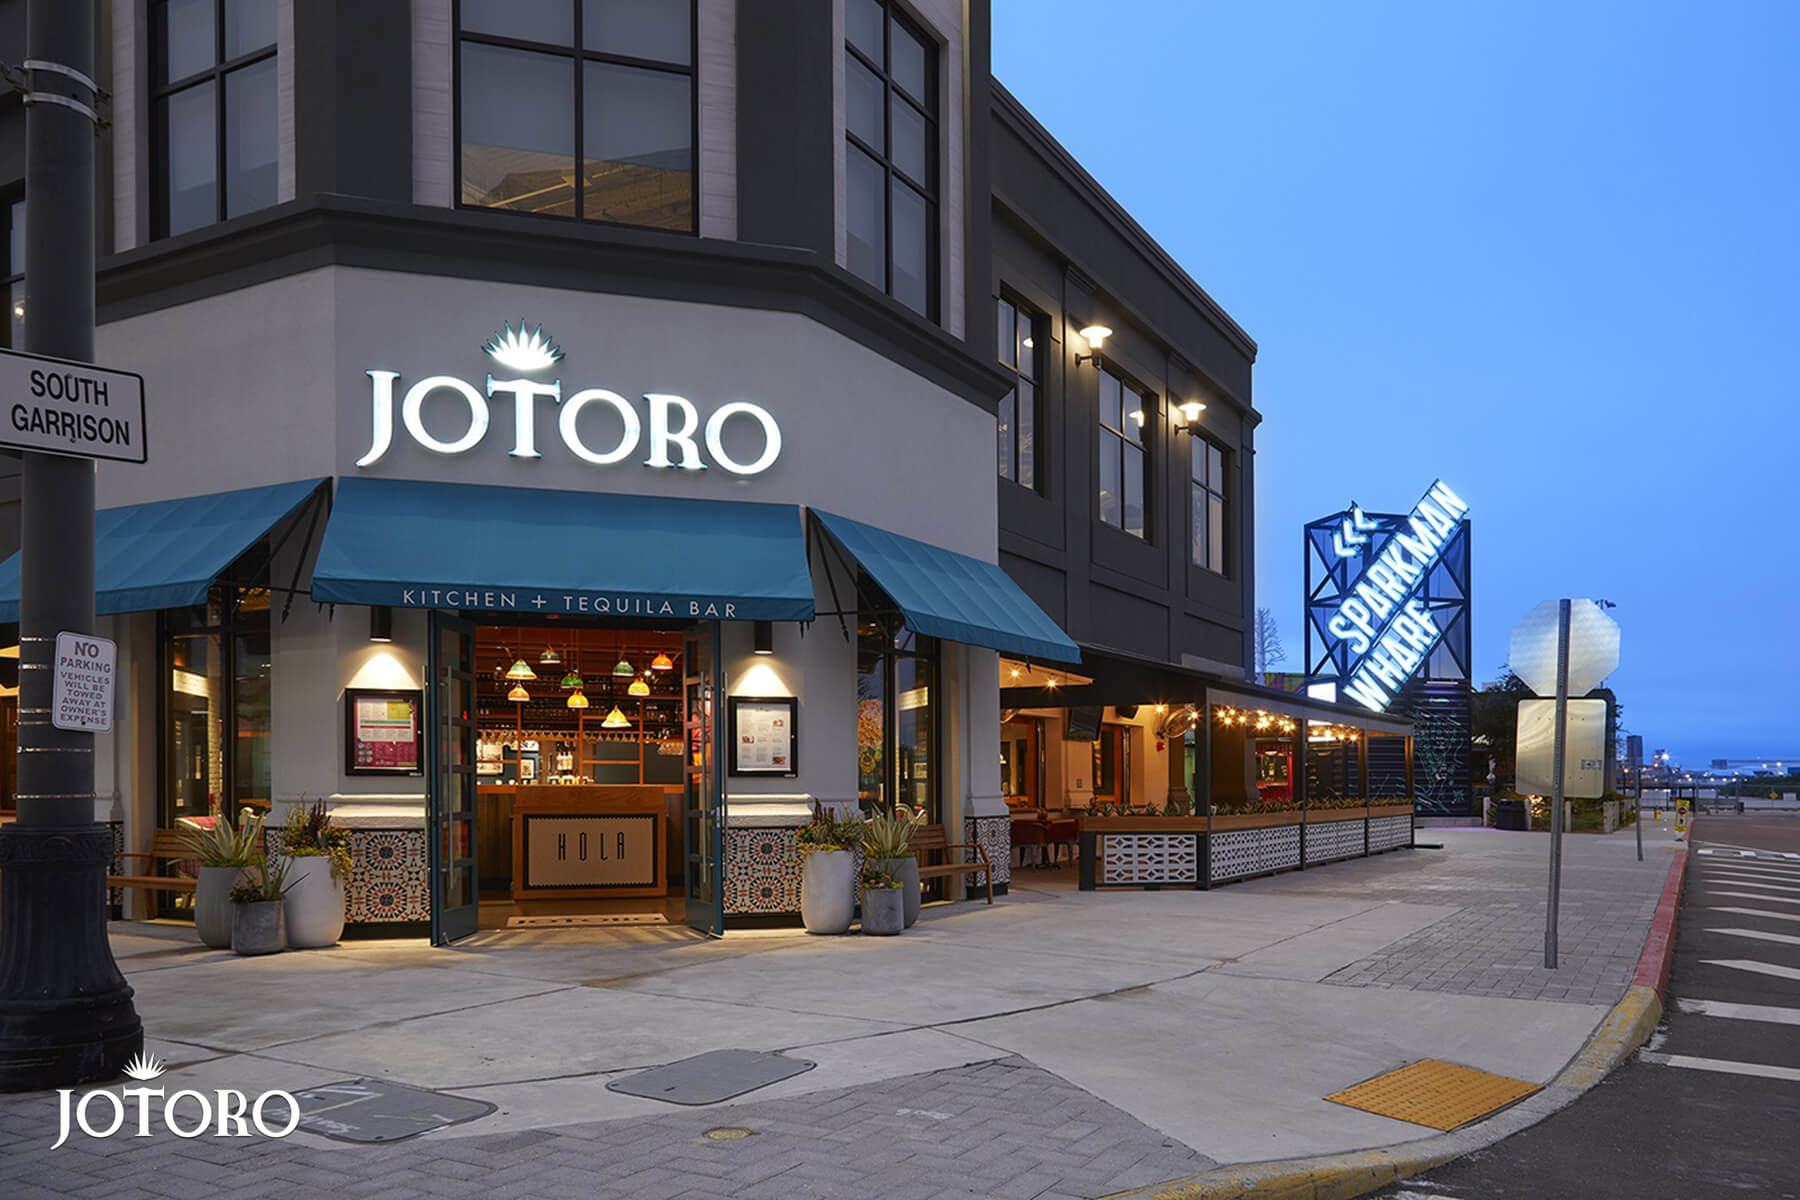 Jotoro Kitchen & Tequila Bar - Tampa, FL